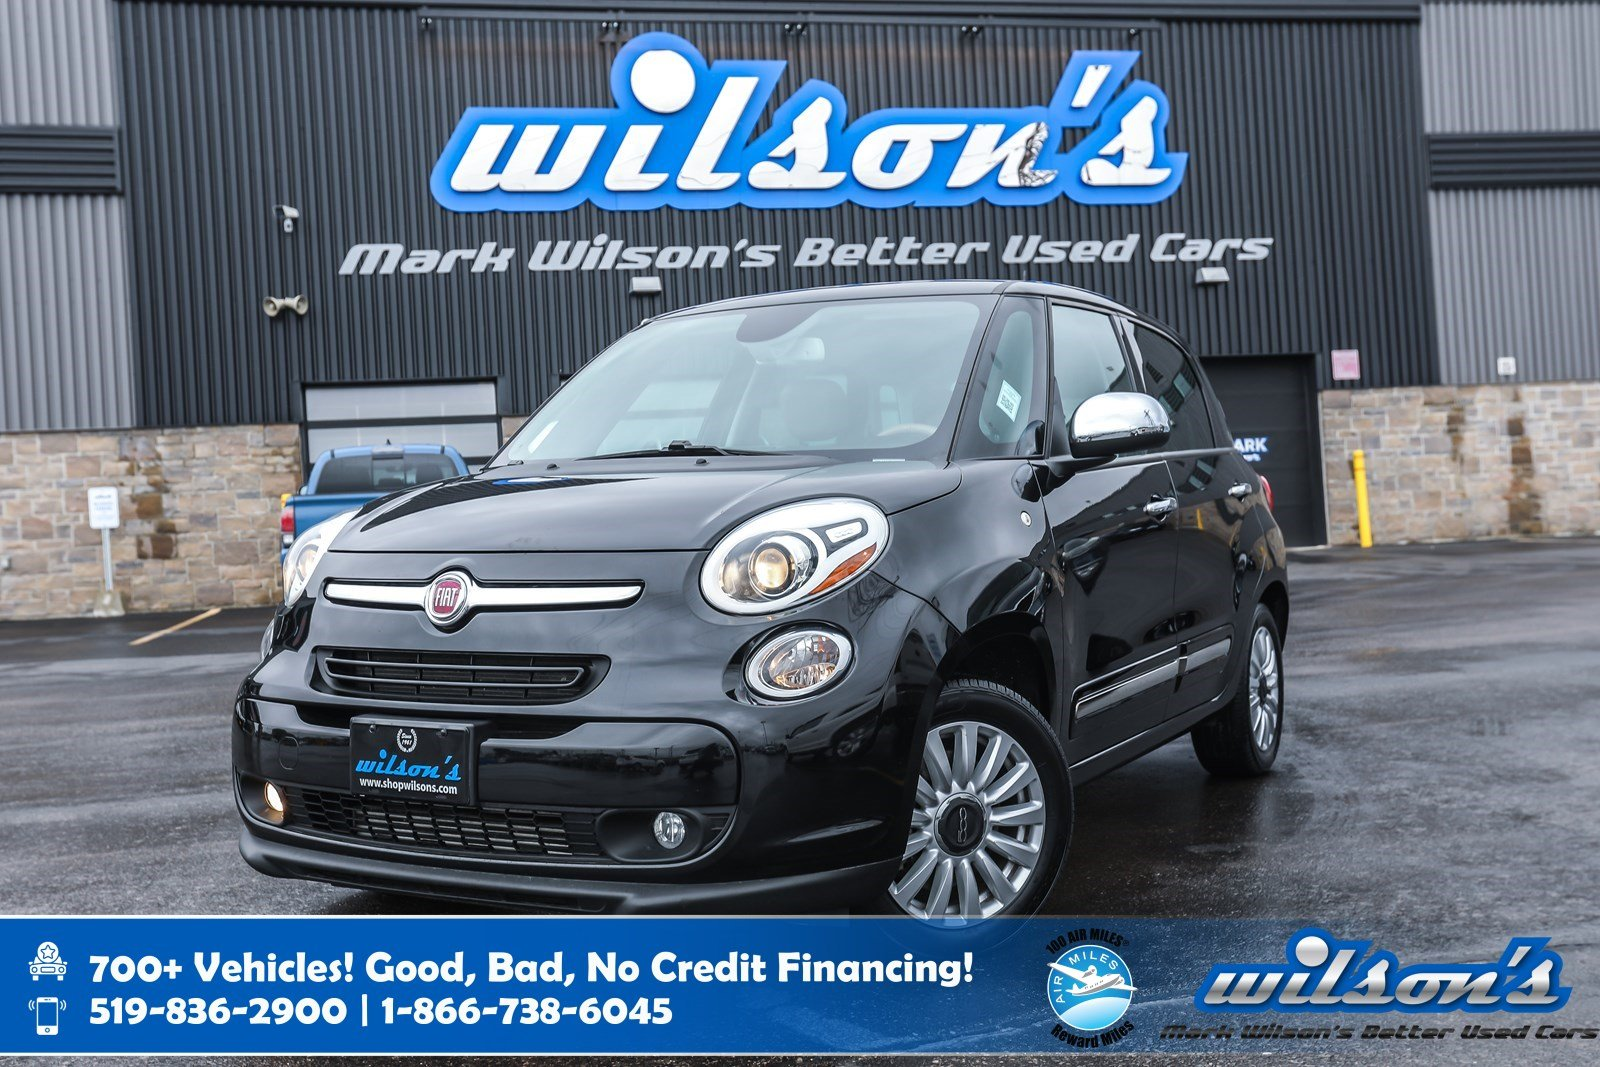 Certified Pre-Owned 2015 FIAT 500 Lounge, Leather, Rear Camera, Bluetooth, Heated Seats, Cruise Control, Alloys and more!